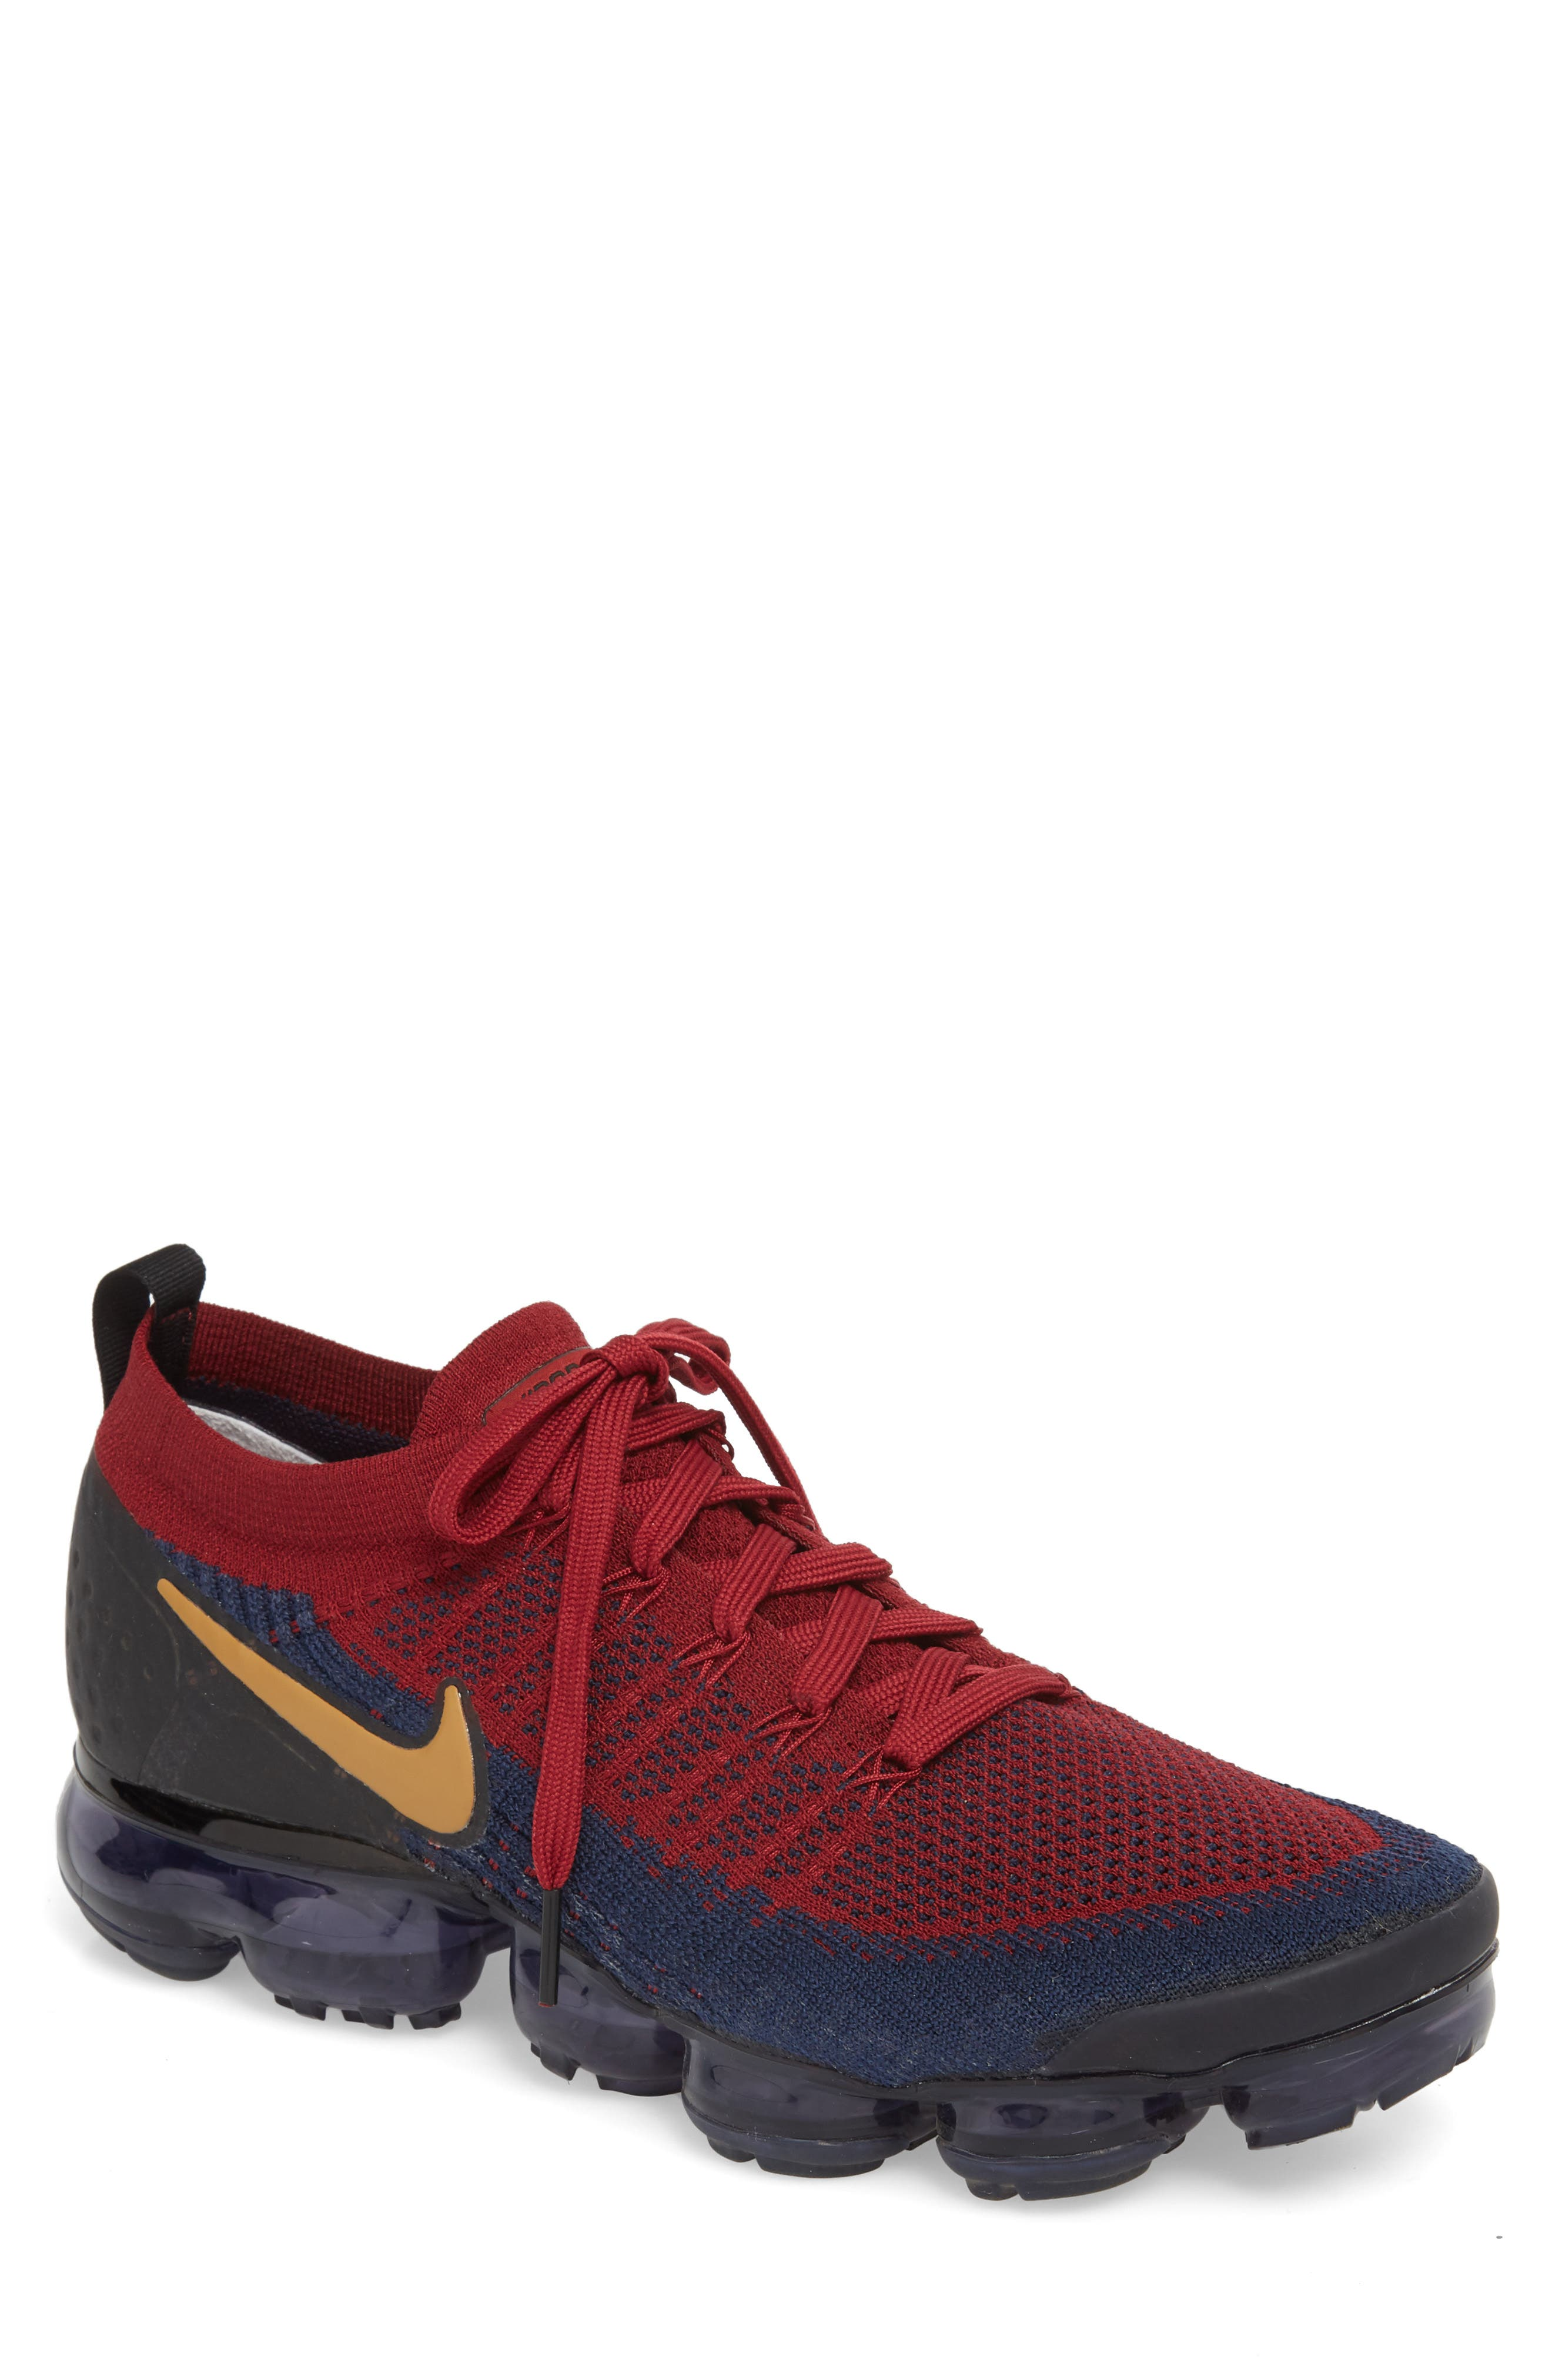 Air Vapormax Flyknit 2 Running Shoe,                             Main thumbnail 1, color,                             Team Red/ Wheat/ Obsidian